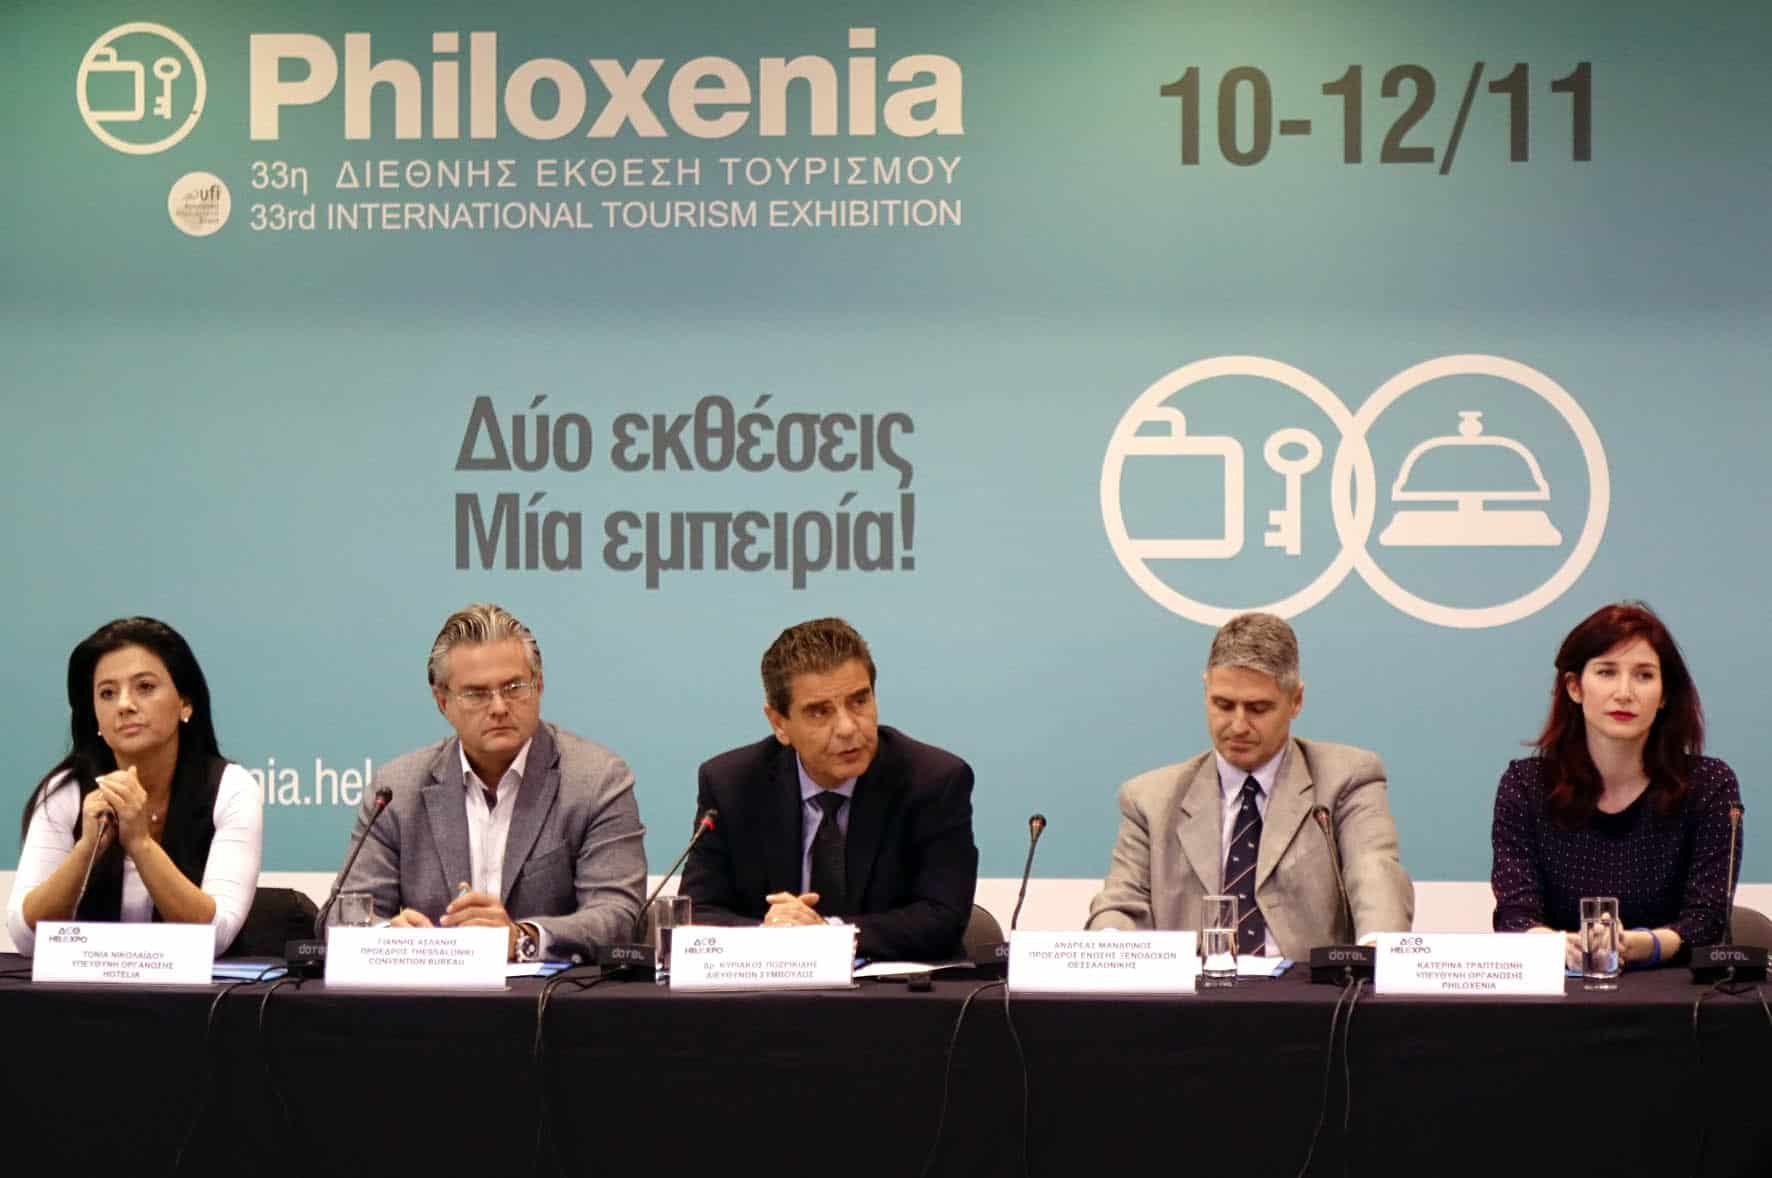 PHOTO 1 philoxenia